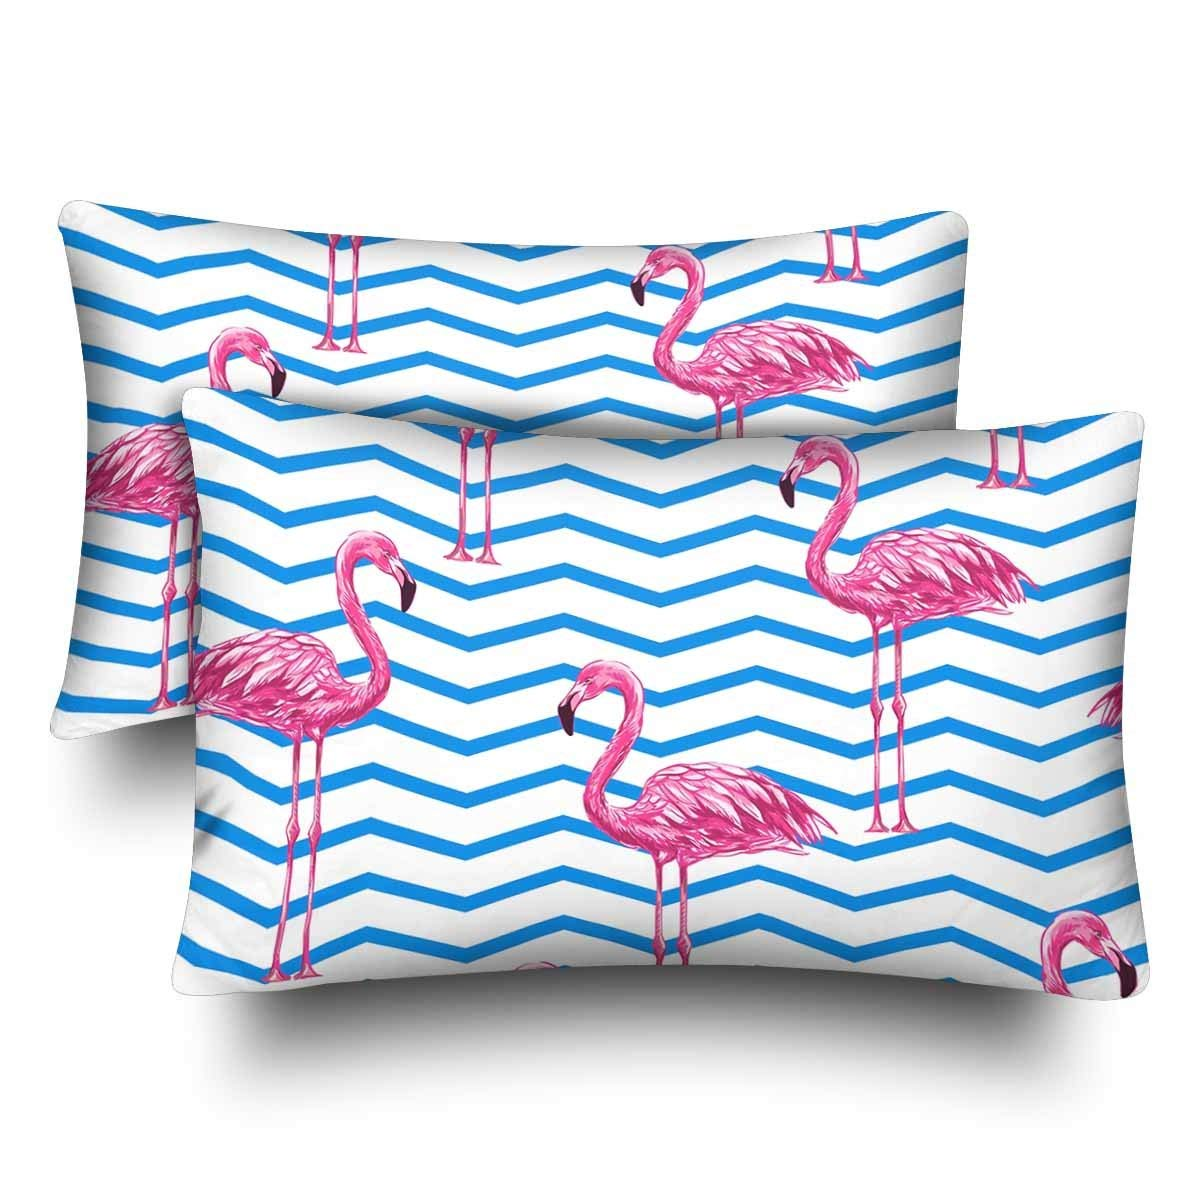 GCKG Beautiful Floral Tropical Pink Flamingo Abstract Chevron Pillow Cases Pillowcase 20x30 inches Set of 2 - image 4 of 4